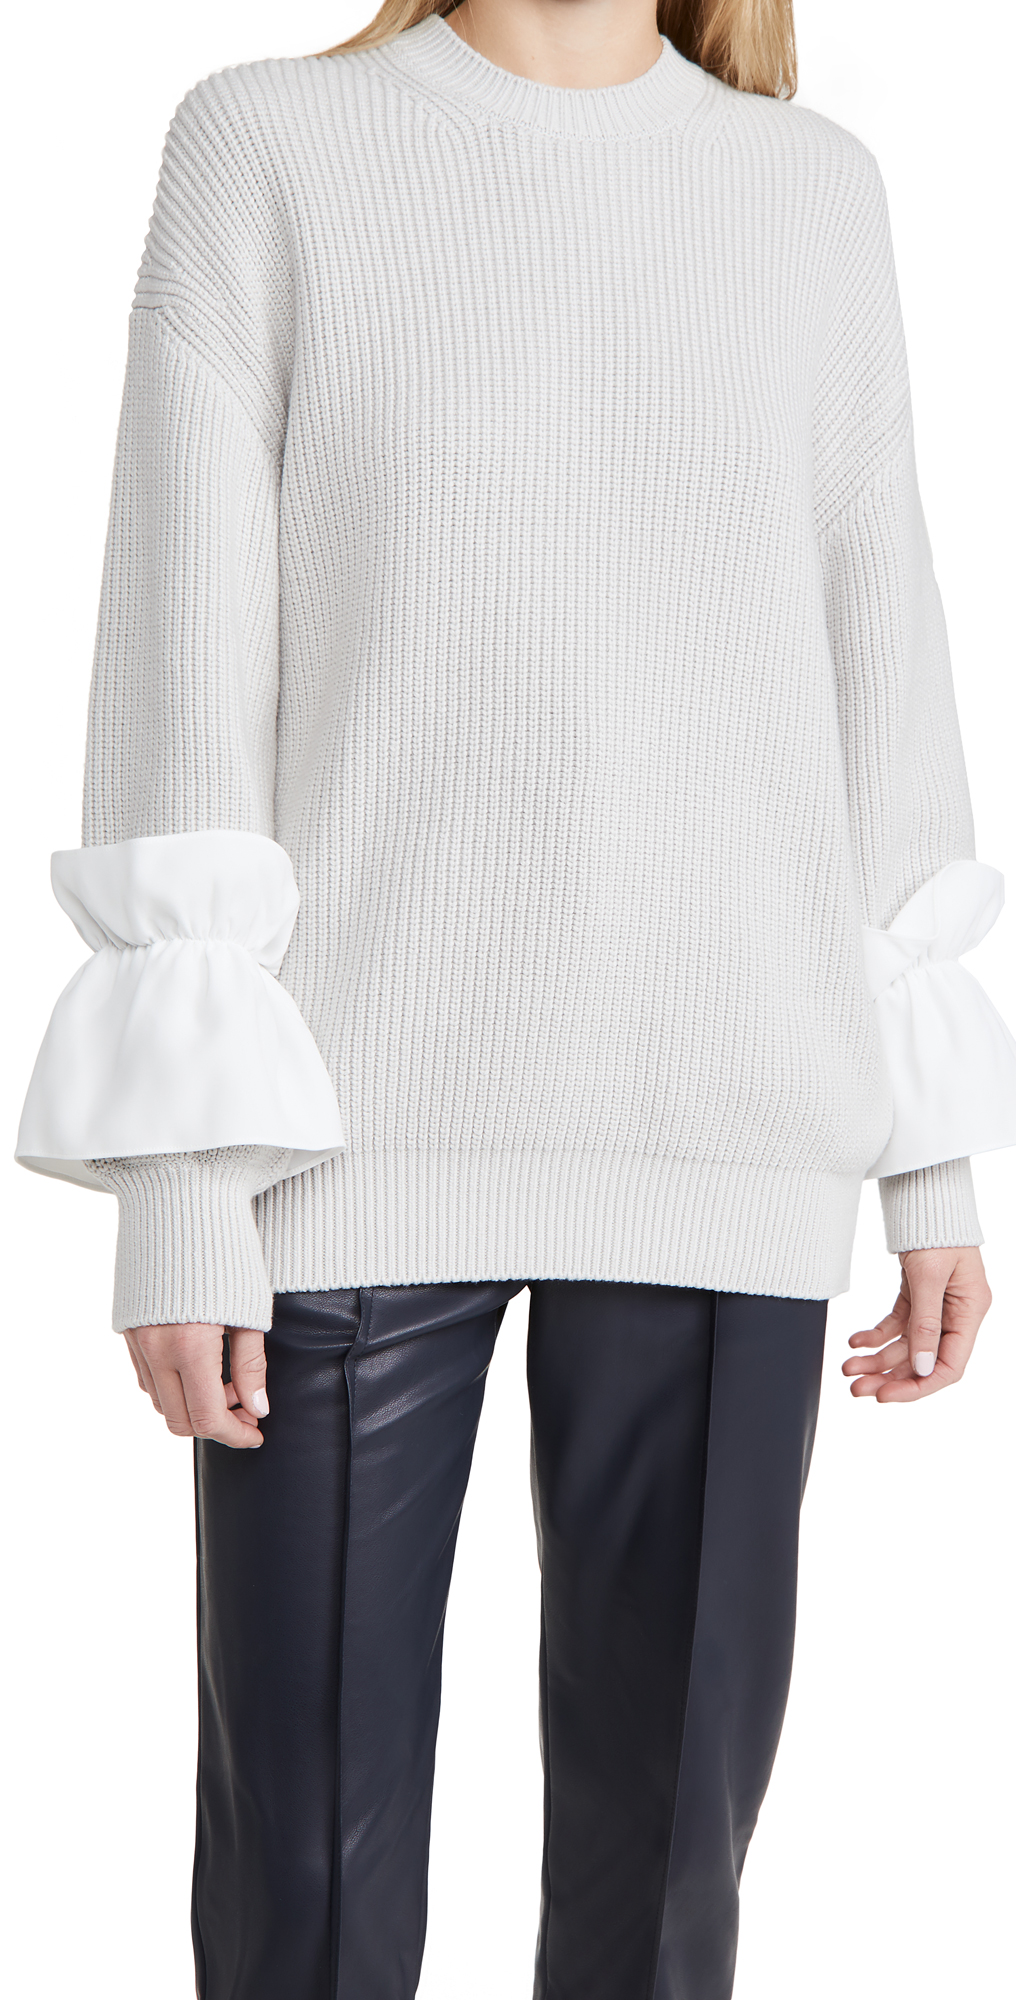 Adeam Ruffle Cuff Sweater